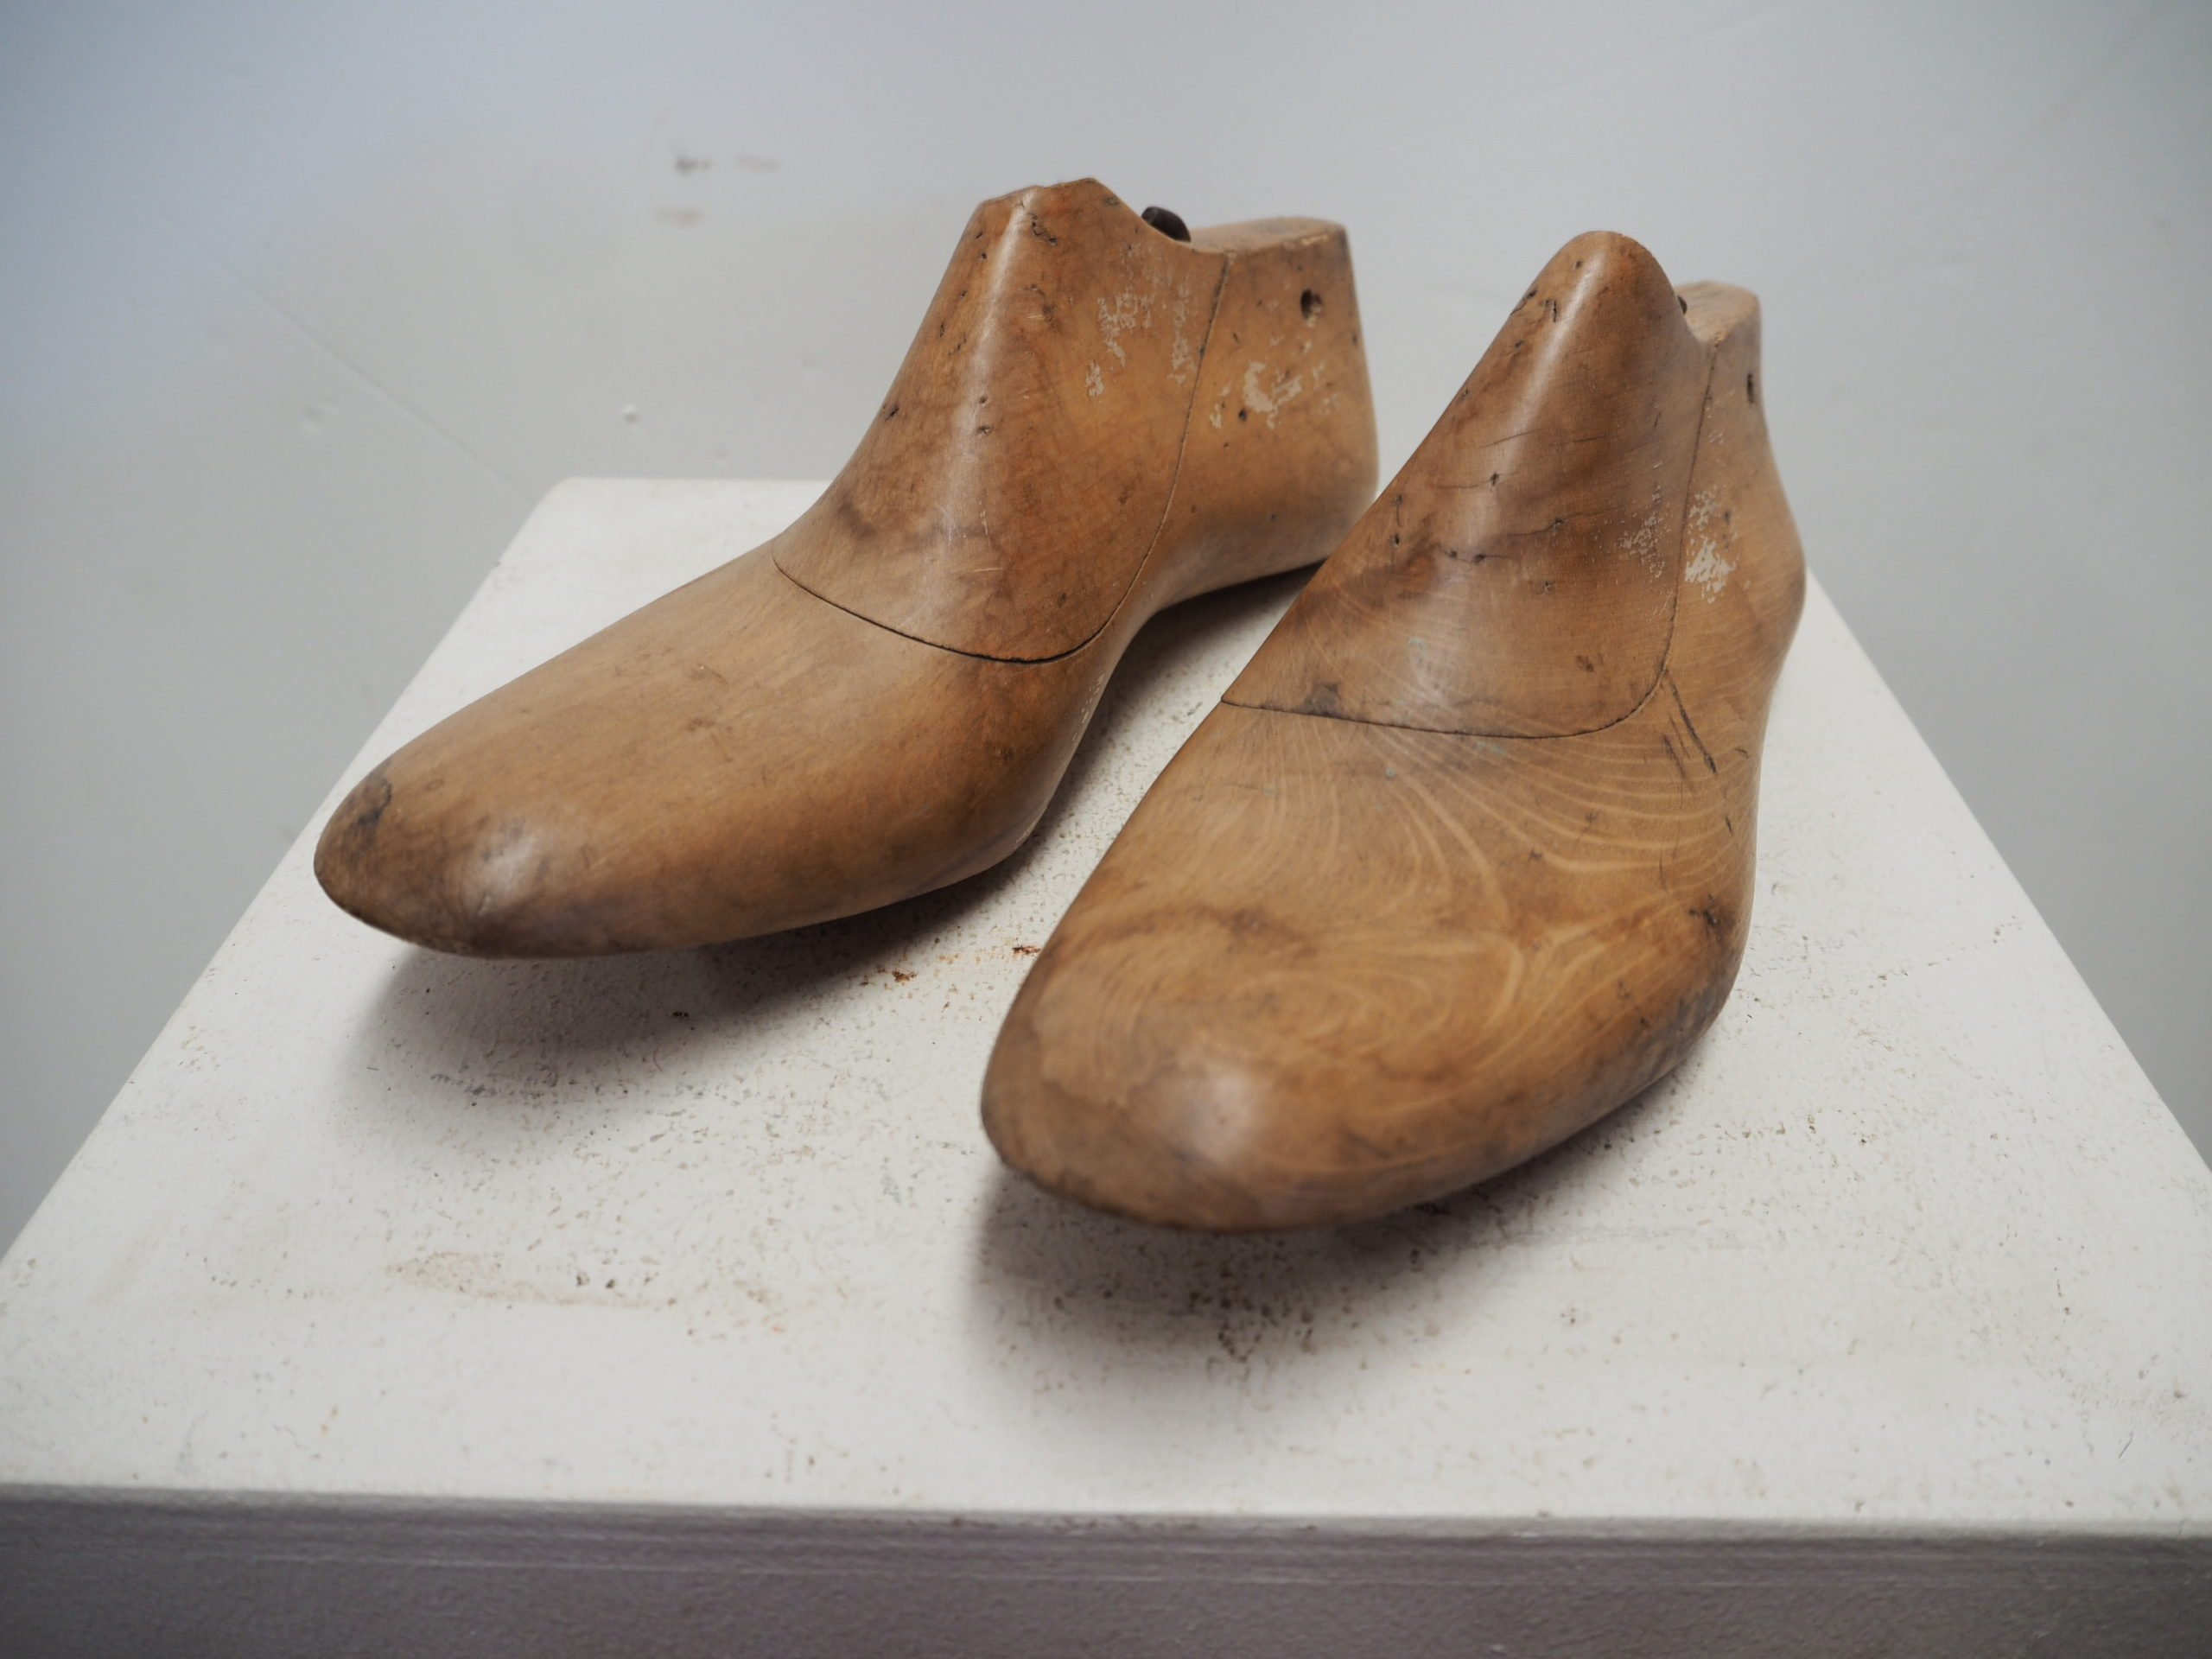 Turkish wooden shoe lasts